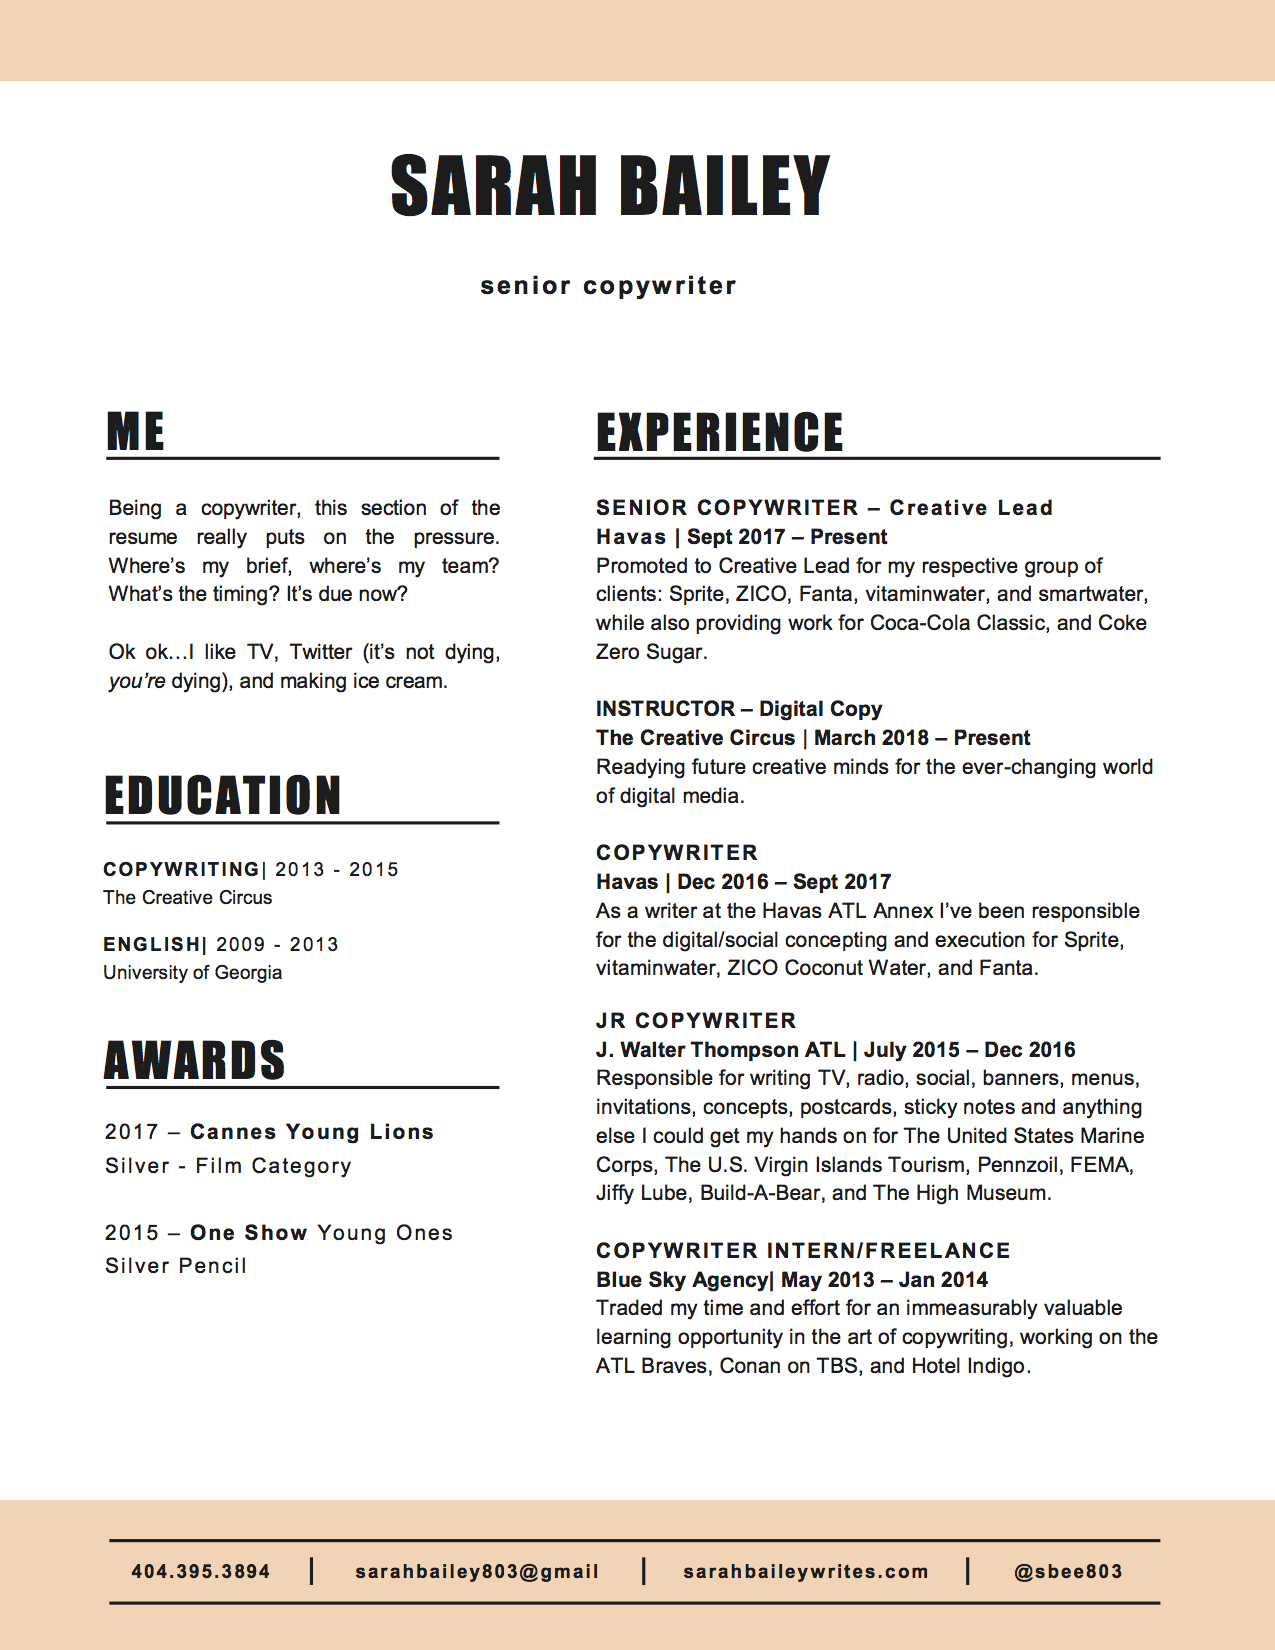 Resume-Sarah Bailey-2018.jpg